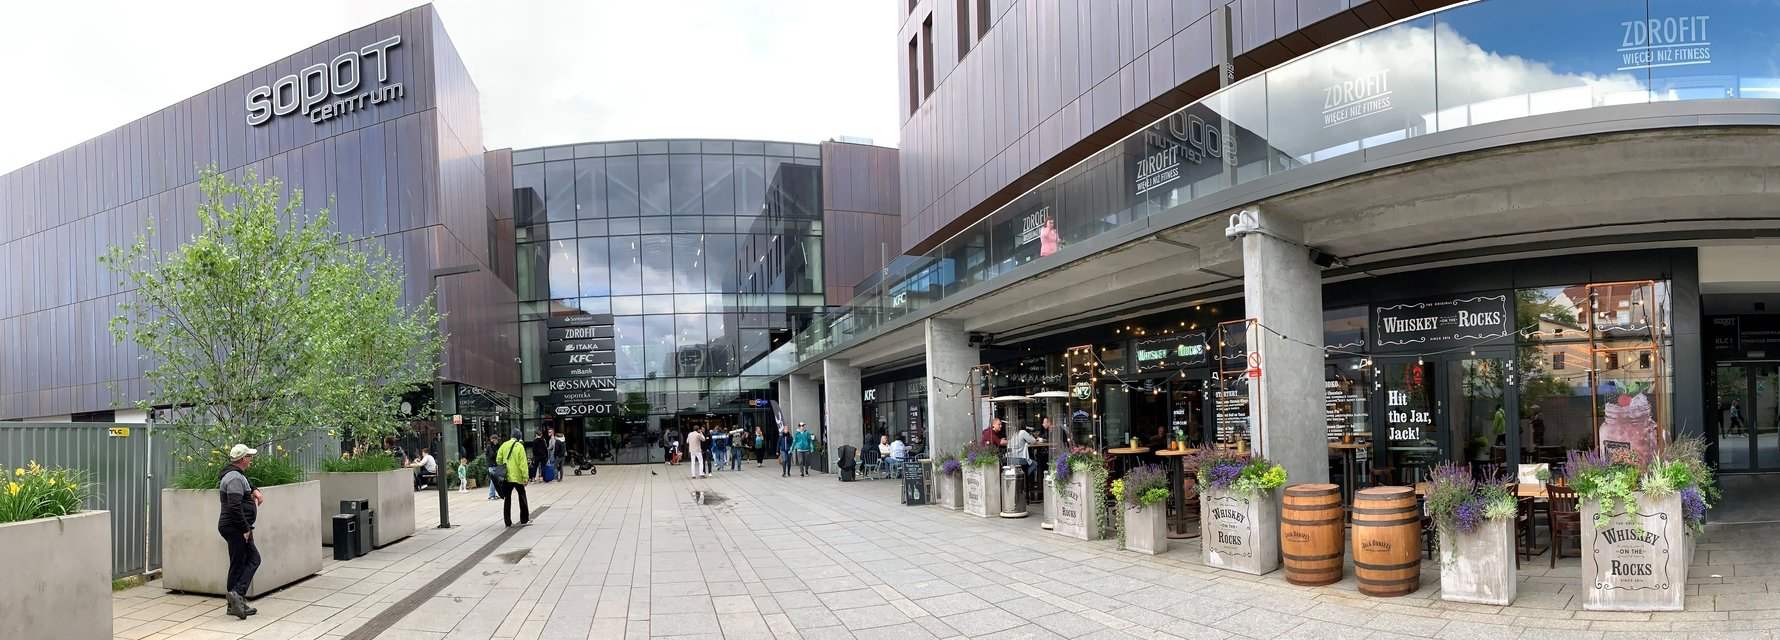 Sopot Centrum Panorama